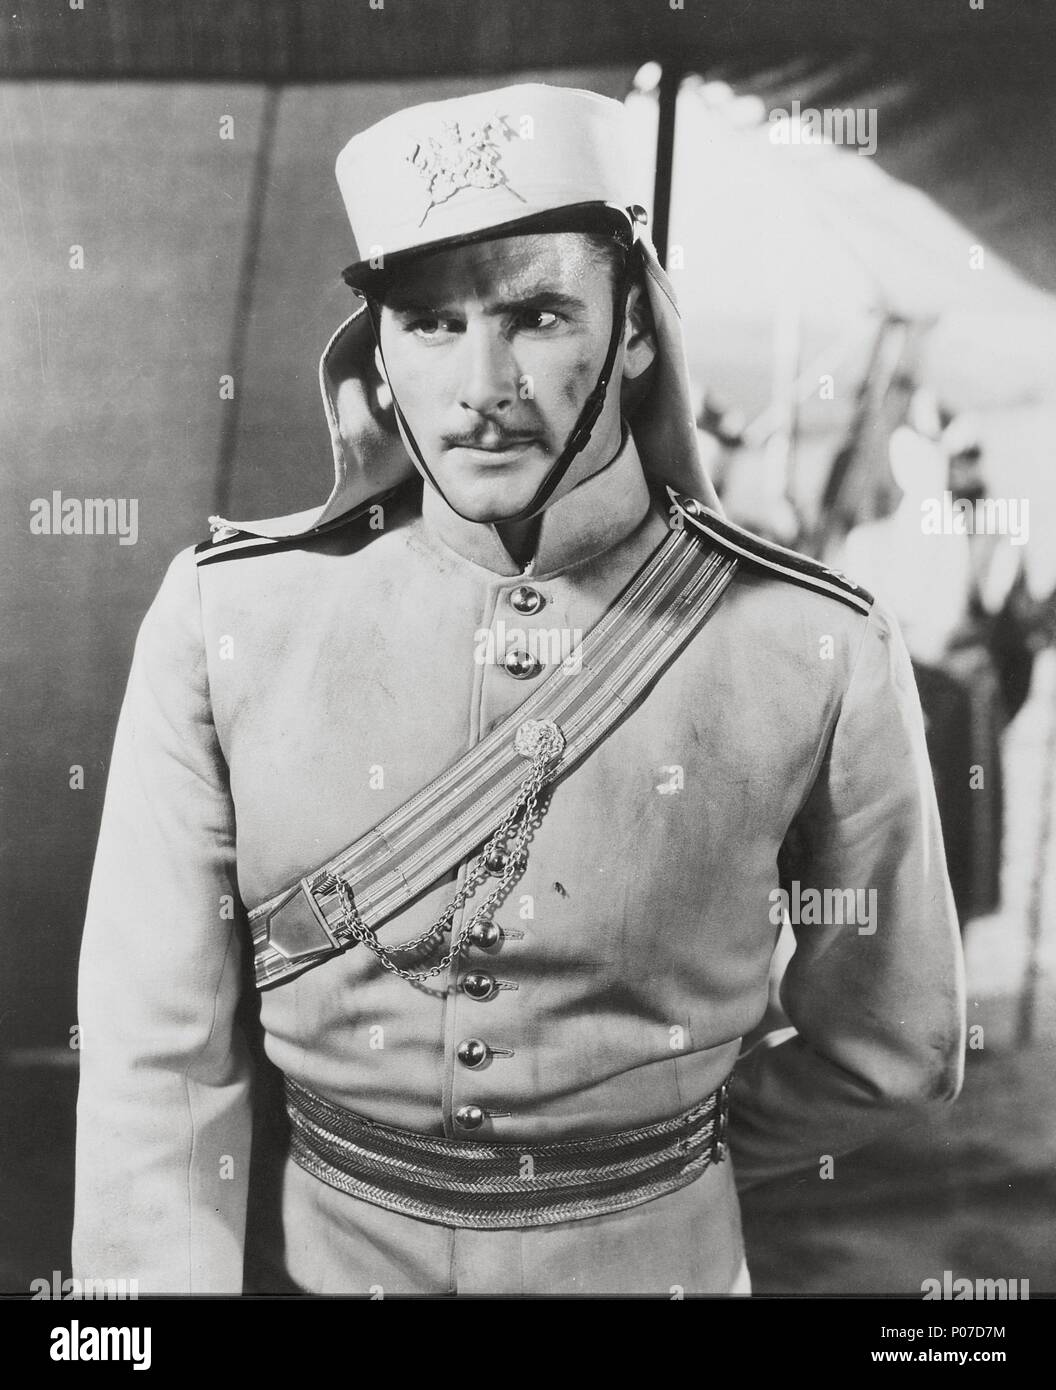 Original Film Title: THE CHARGE OF THE LIGHT BRIGADE.  English Title: THE CHARGE OF THE LIGHT BRIGADE.  Film Director: MICHAEL CURTIZ.  Year: 1936.  Stars: ERROL FLYNN. Credit: WARNER BROTHERS / Album - Stock Image